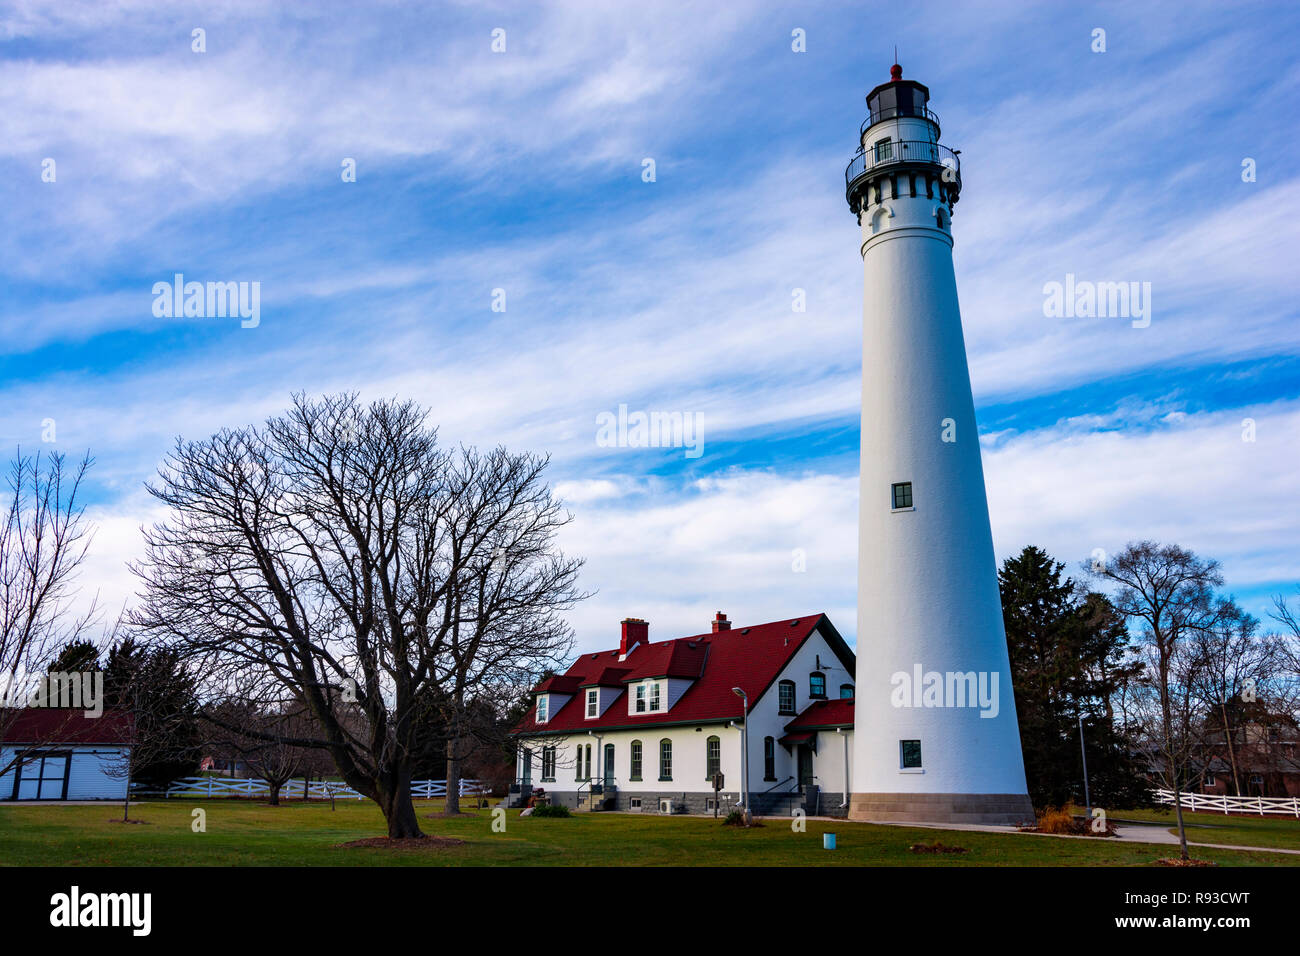 Daylight shot of the Wind Point Lighthouse in Wind Point, WI, United States. - Stock Image